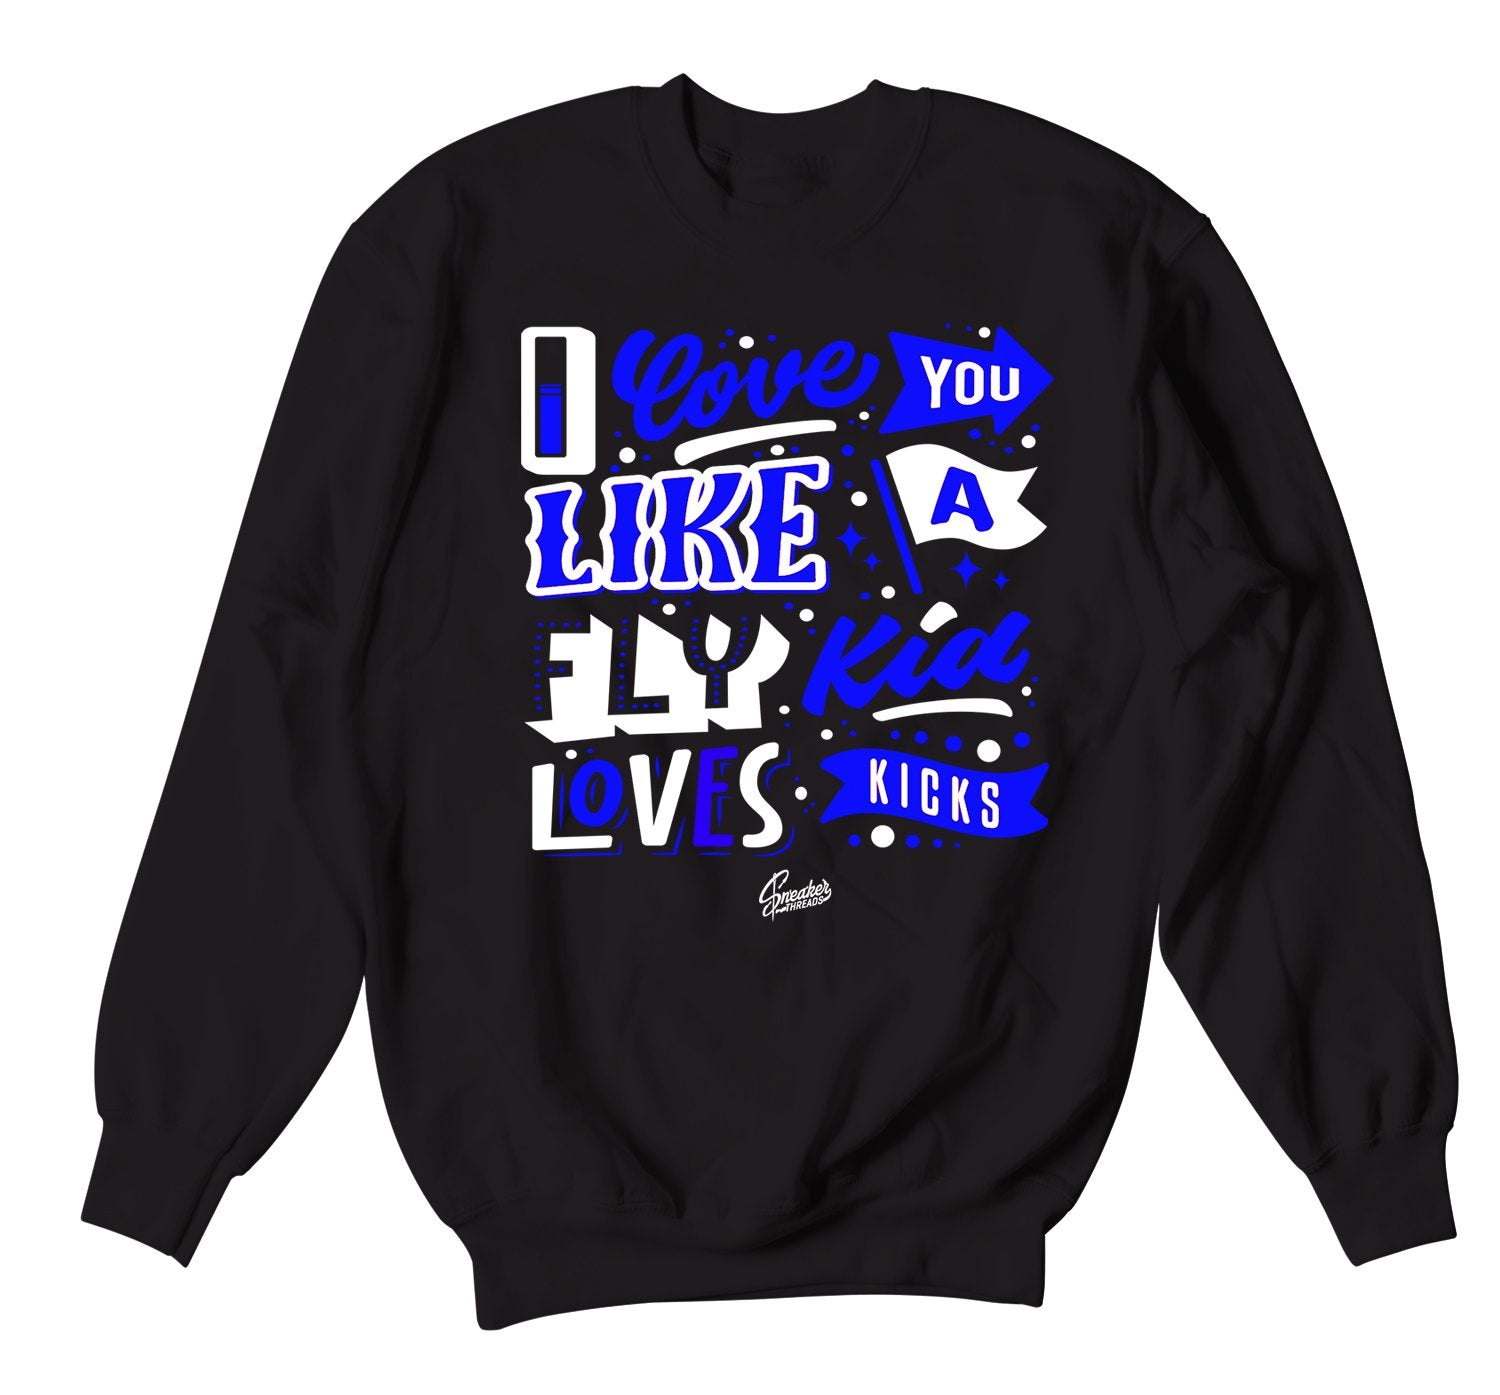 sweatshirt collection has matching sneaker collection arms 90 hyper royal sneakers